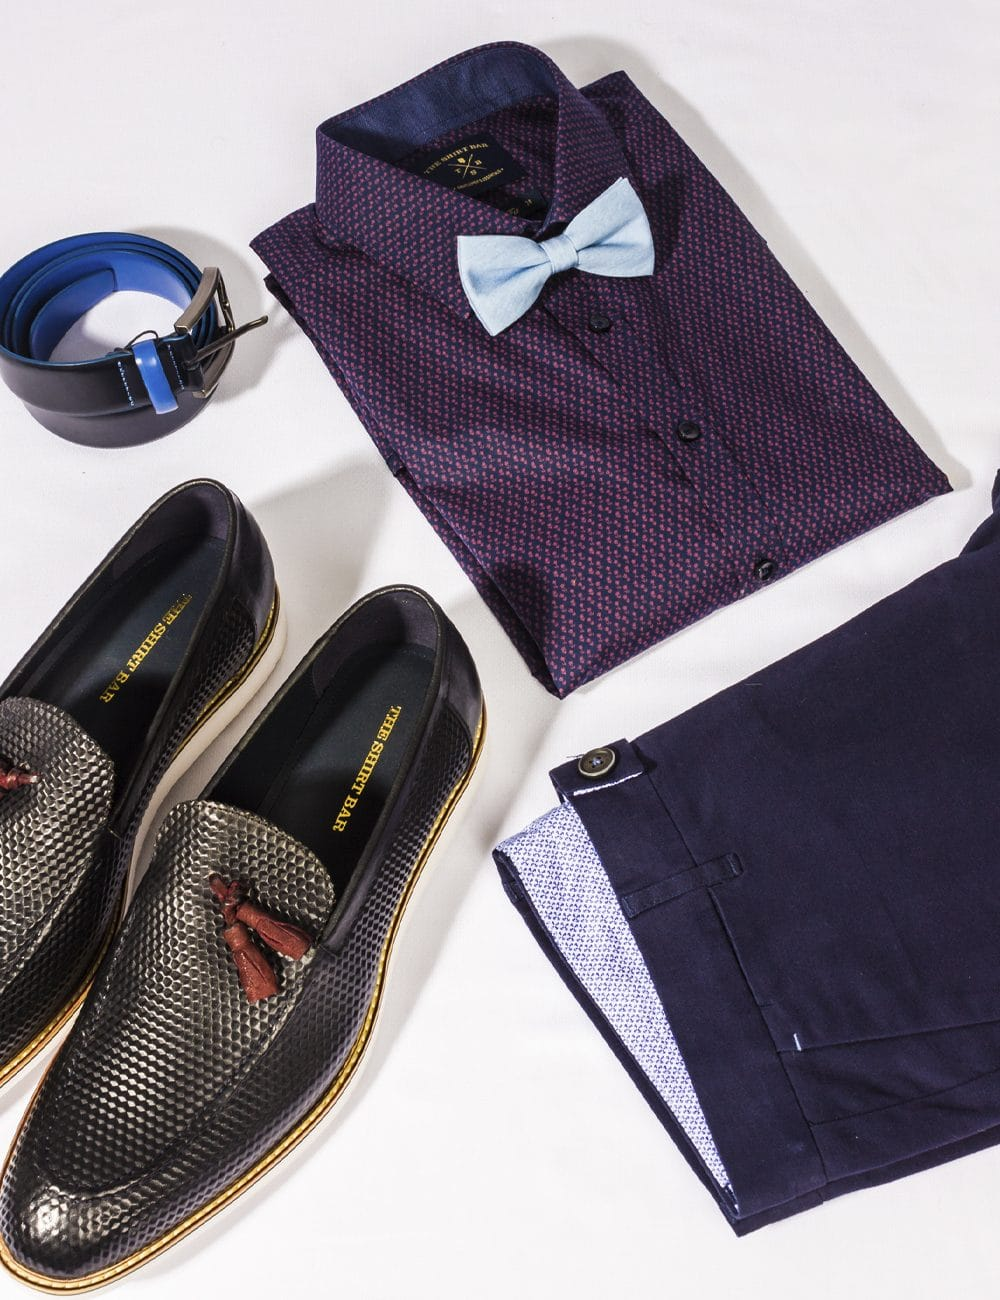 Shop The Look - Versatility In A Shirt